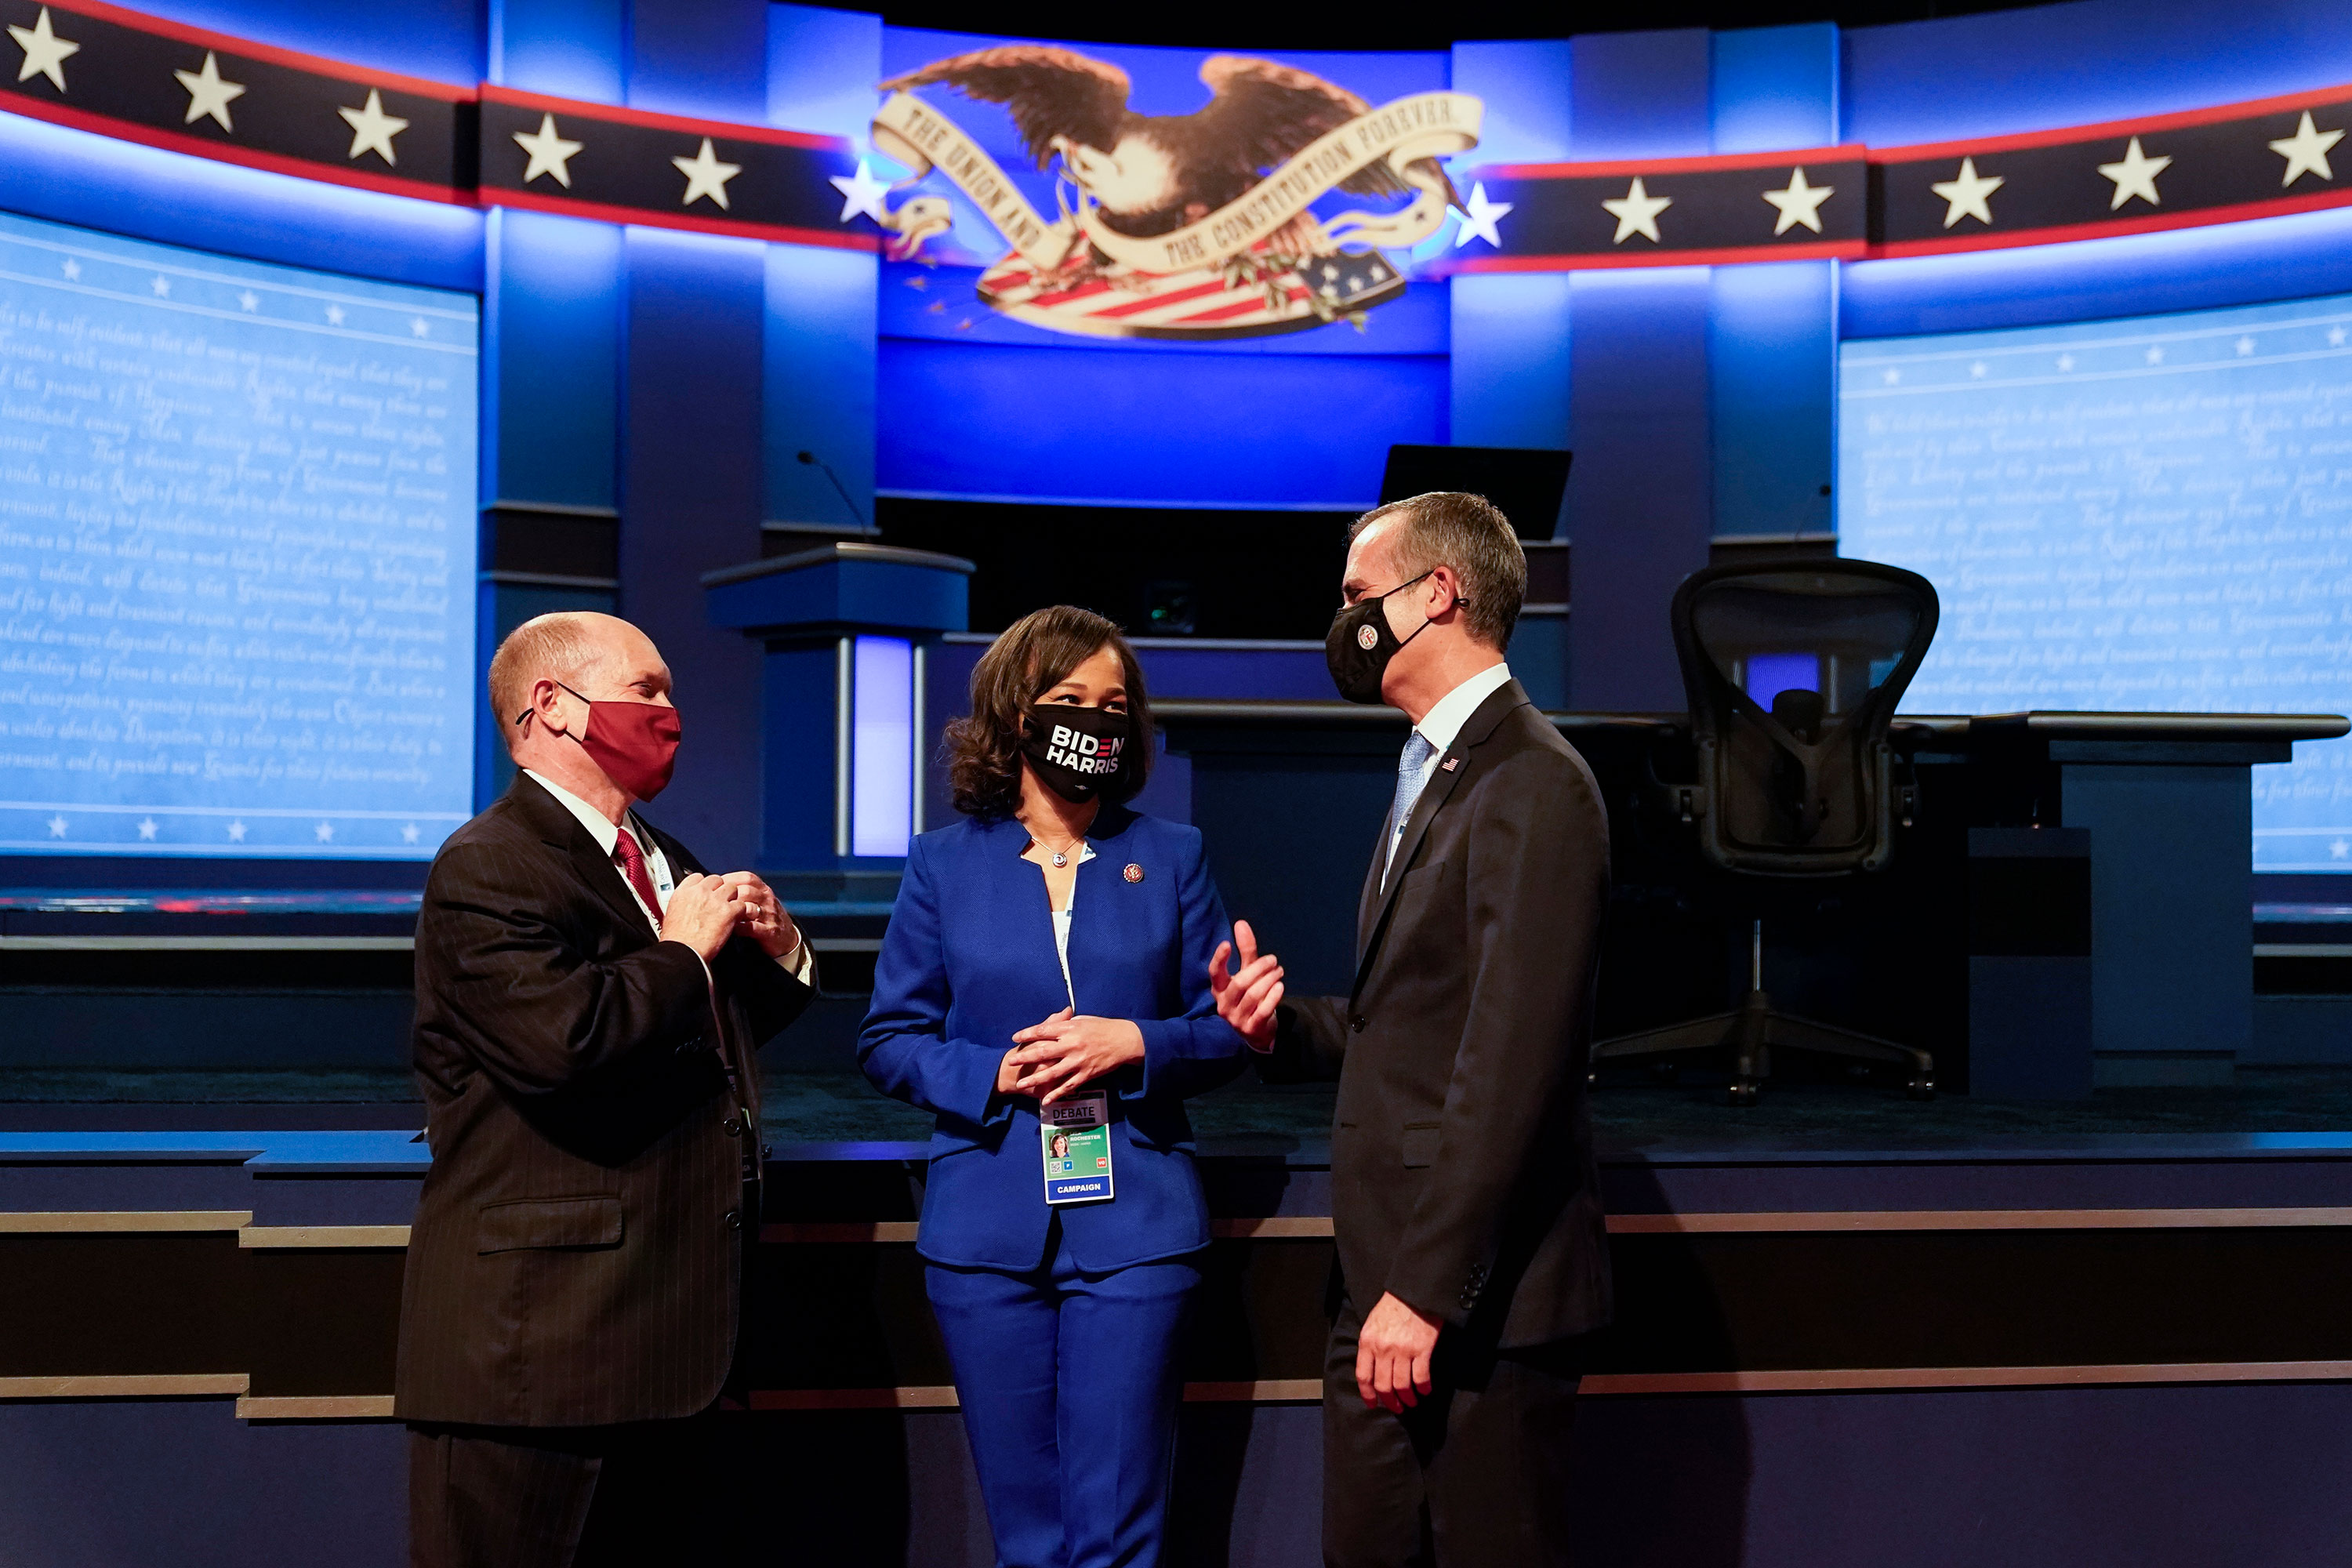 Left to right: Rep. Chris Coons, Rep. Lisa Rochester, and Mayor of Los Angeles Eric Garcetti speak before the start of the first presidential debate on September 29 in Cleveland, Ohio.